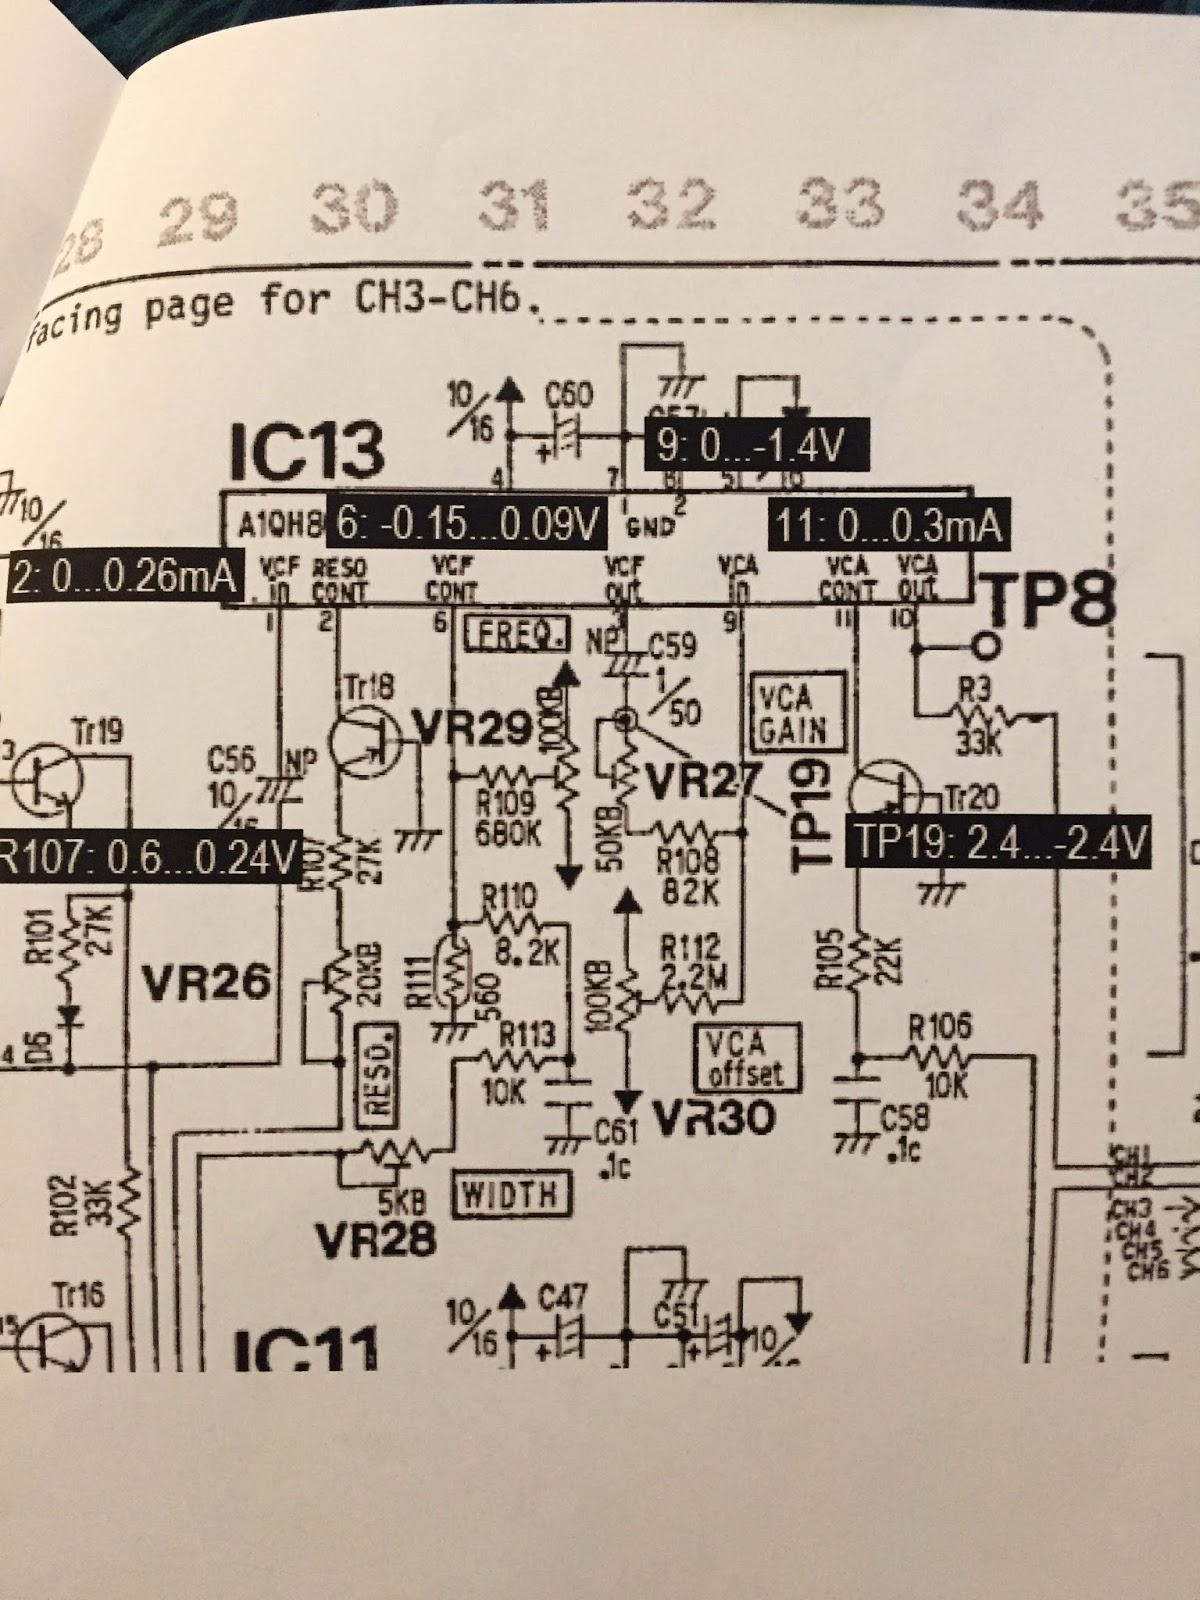 medium resolution of an annotated juno 106 service manual showing the various voltages i can t quite remember where i got it but i think analogue renaissance made it